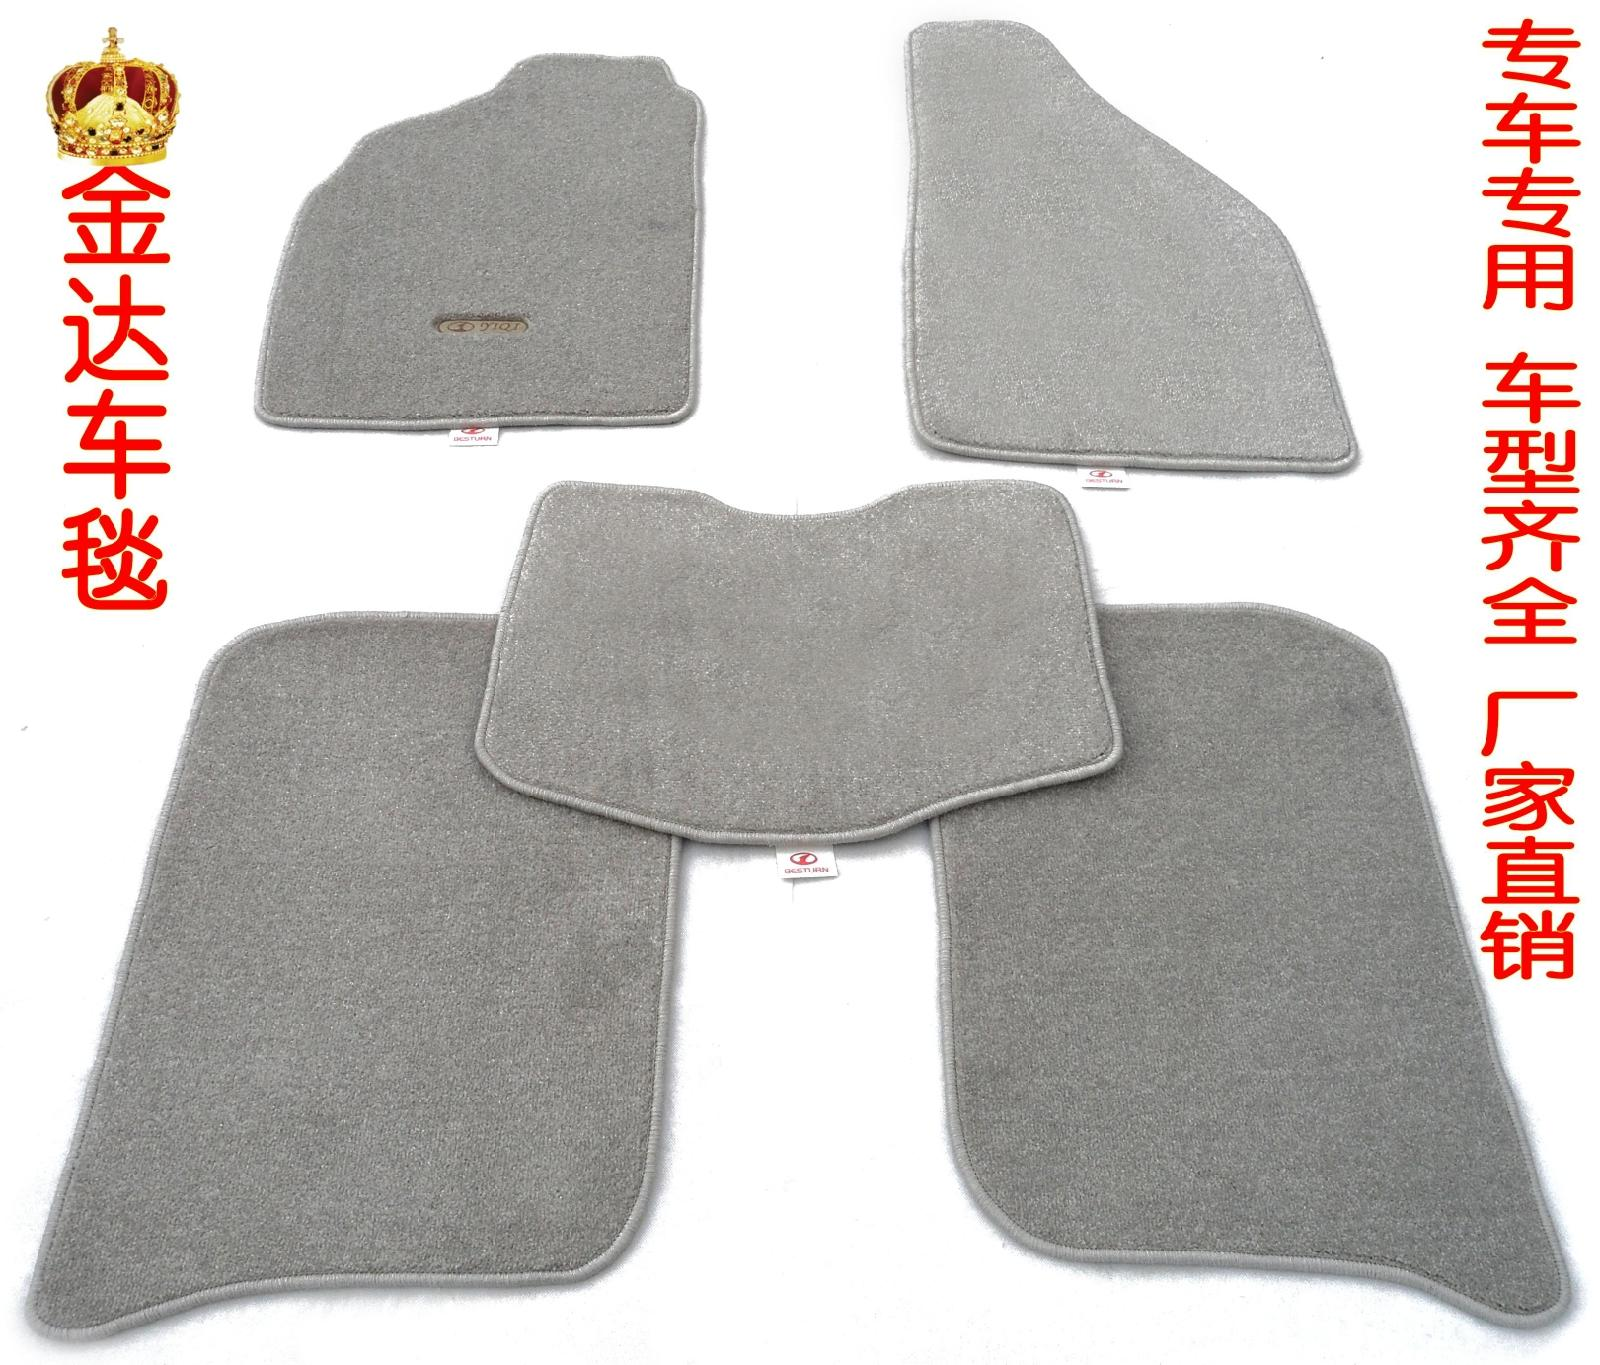 The hq-61 lengthen mat special thickening slip-resistant car carpet pad(China (Mainland))